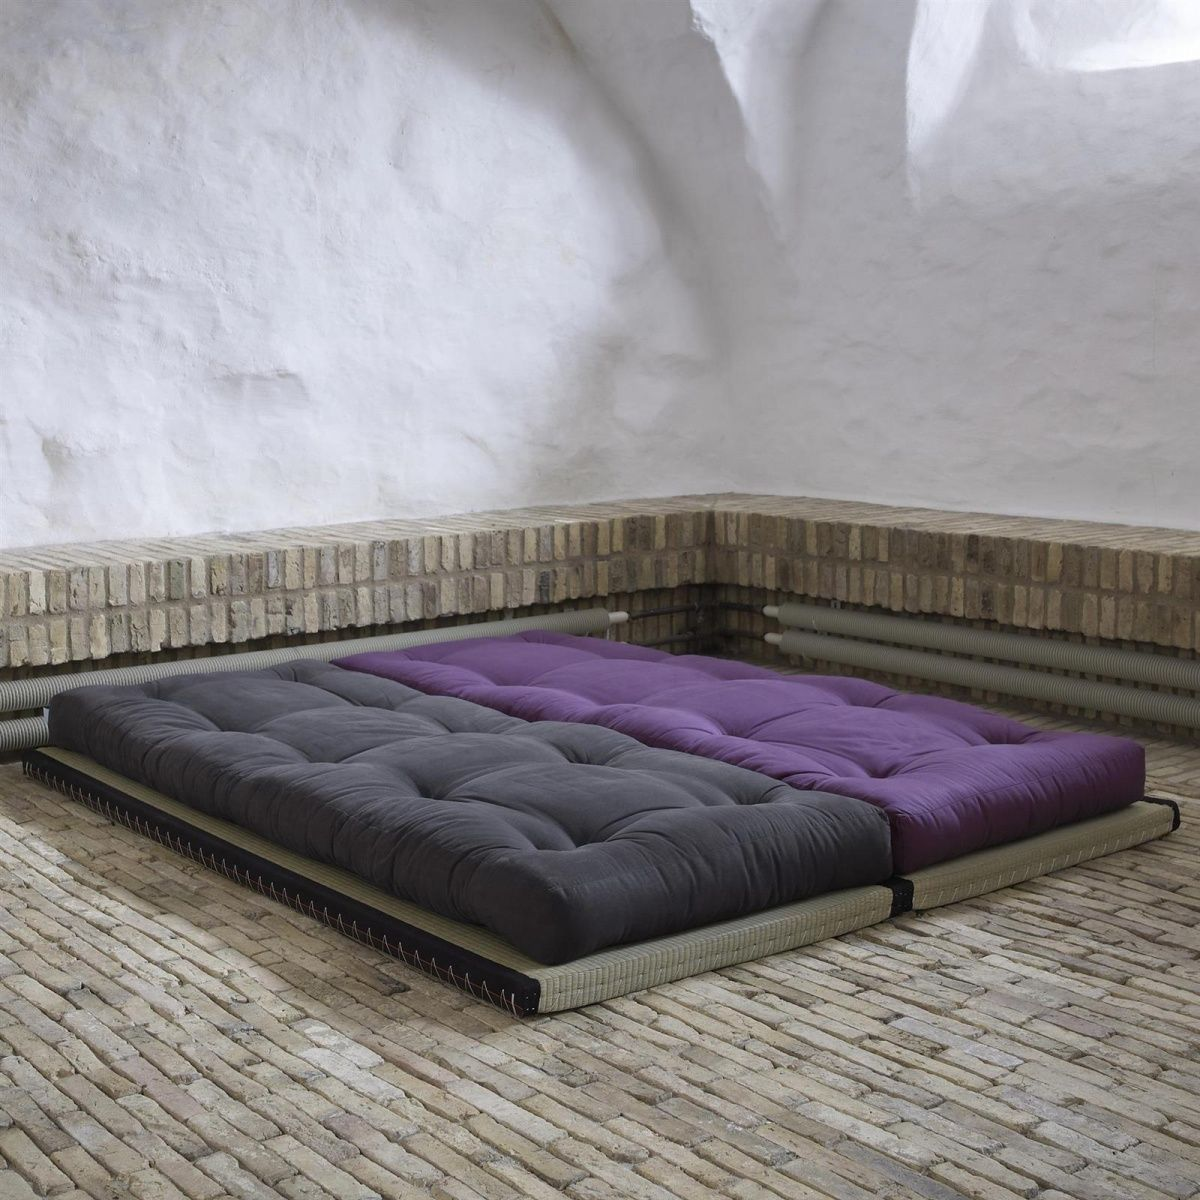 Sofa Bett Chico Chairbeds Pinterest Tiny Houses Smallest  # Muebles Hitters